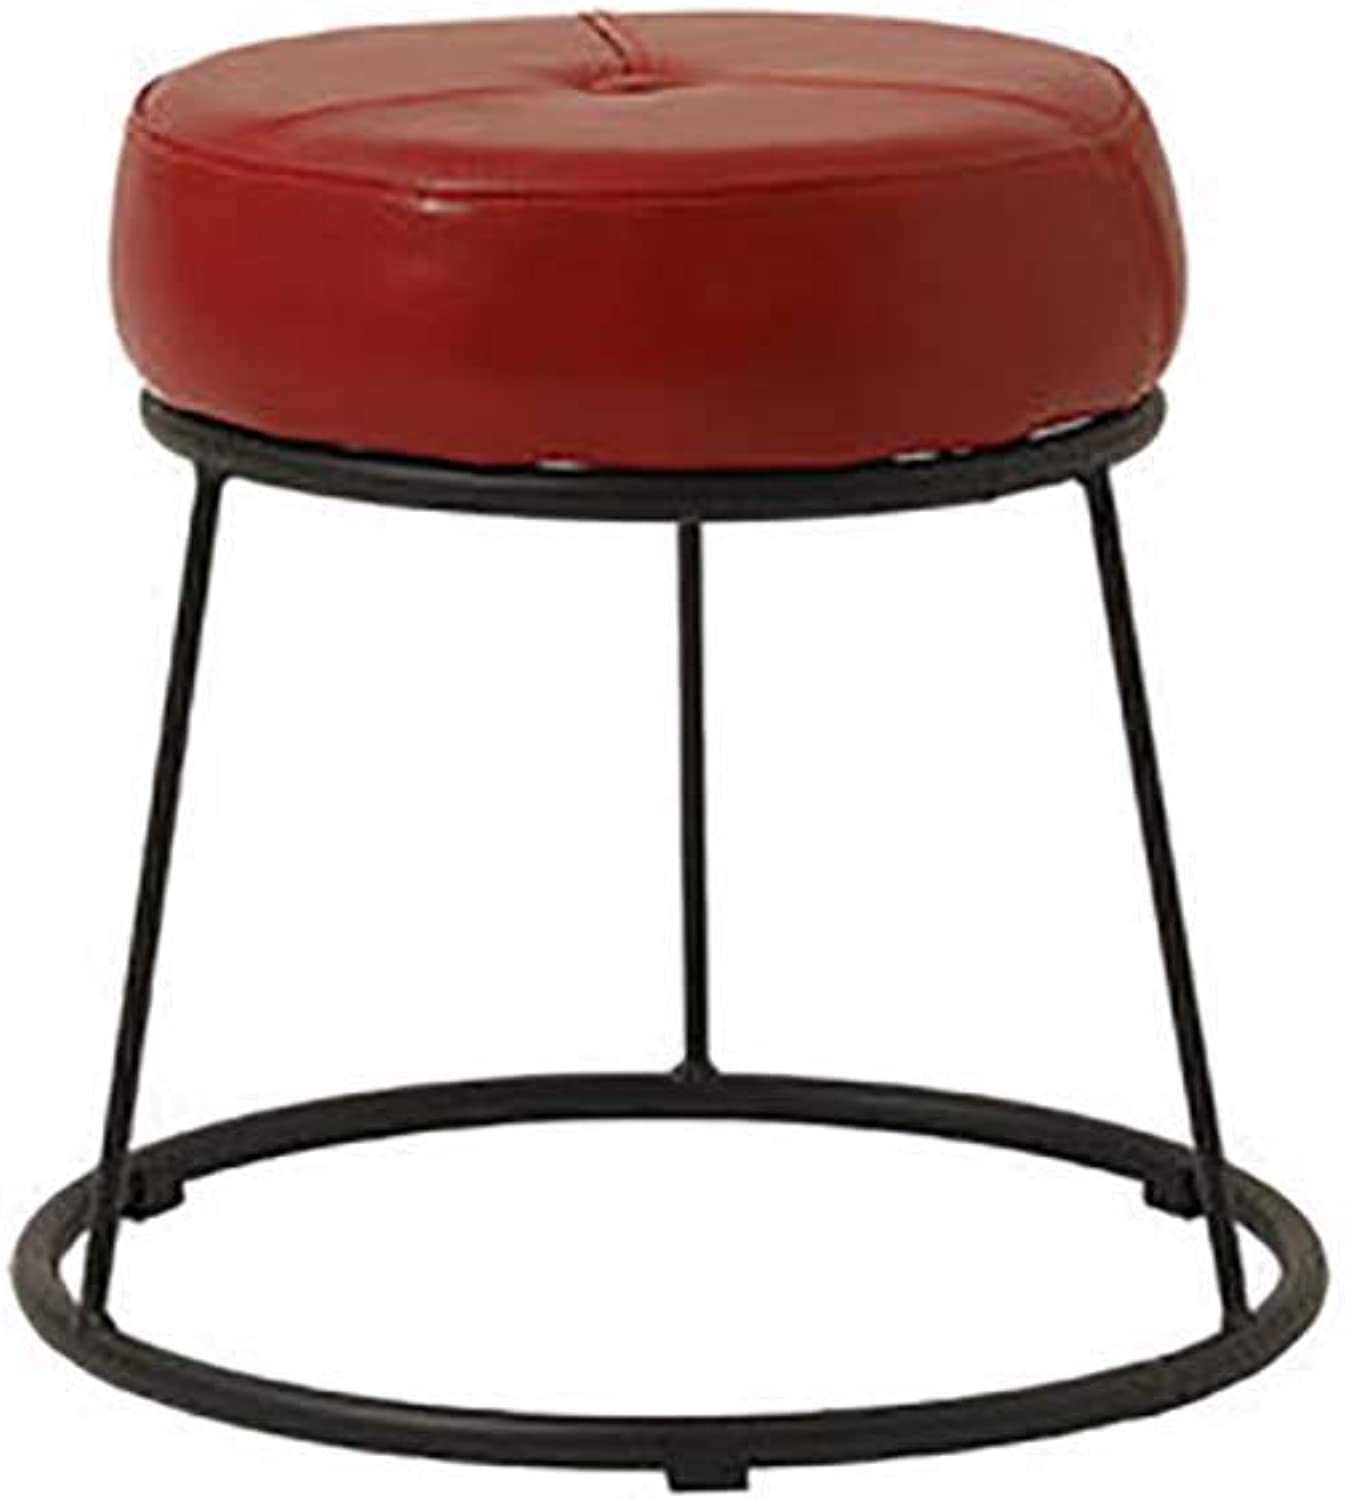 Iron Frame Leather Stool, Creative Stackable Small Bench Sofa Home Simple Modern Dining Table Makeup Footstool-red 28.5x36cm